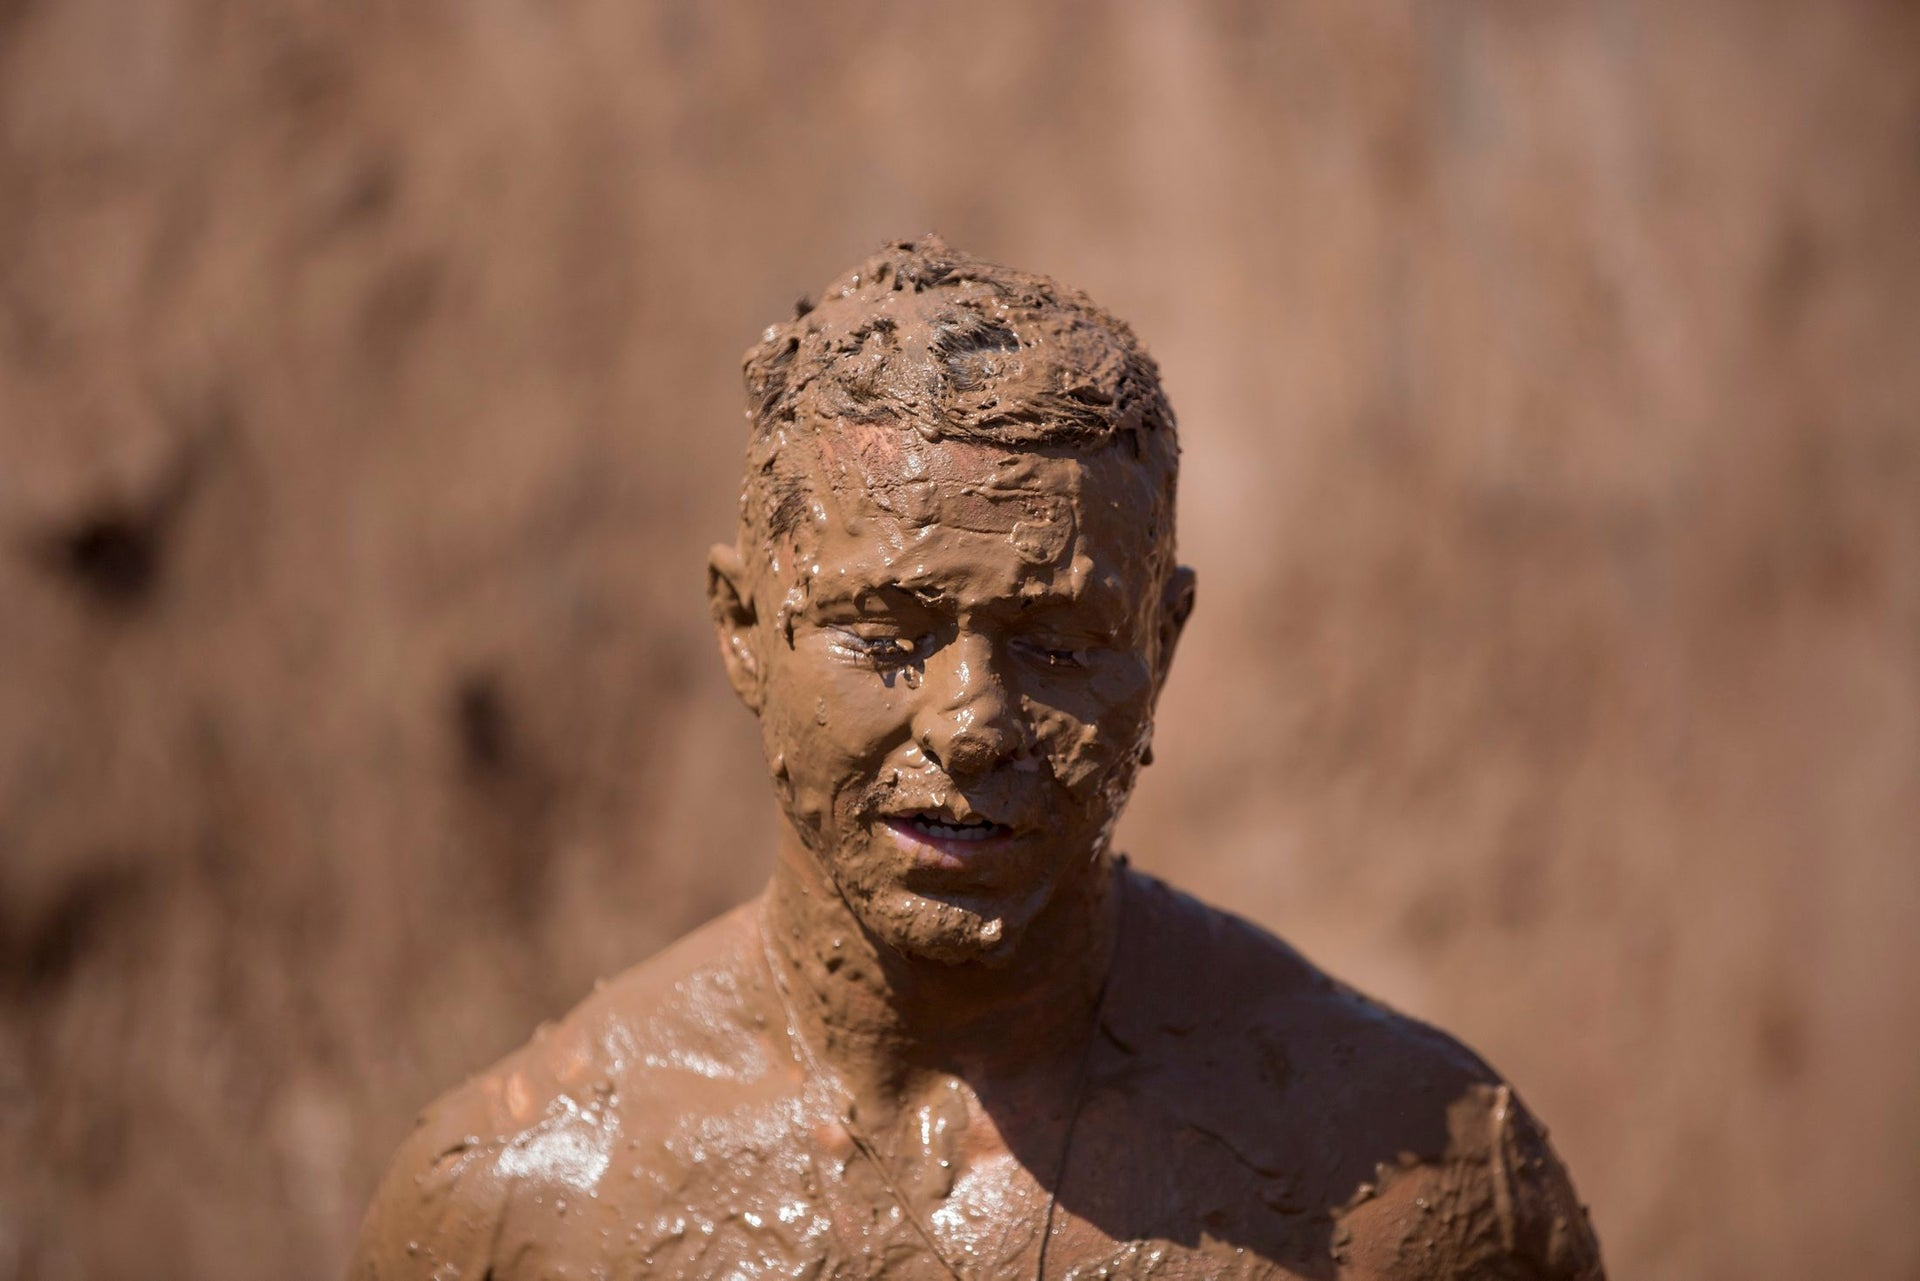 A Participant takes part in the Mud Day race, a 13km obstacle course in Tel Aviv, Israel, Friday, March 24, 2017.